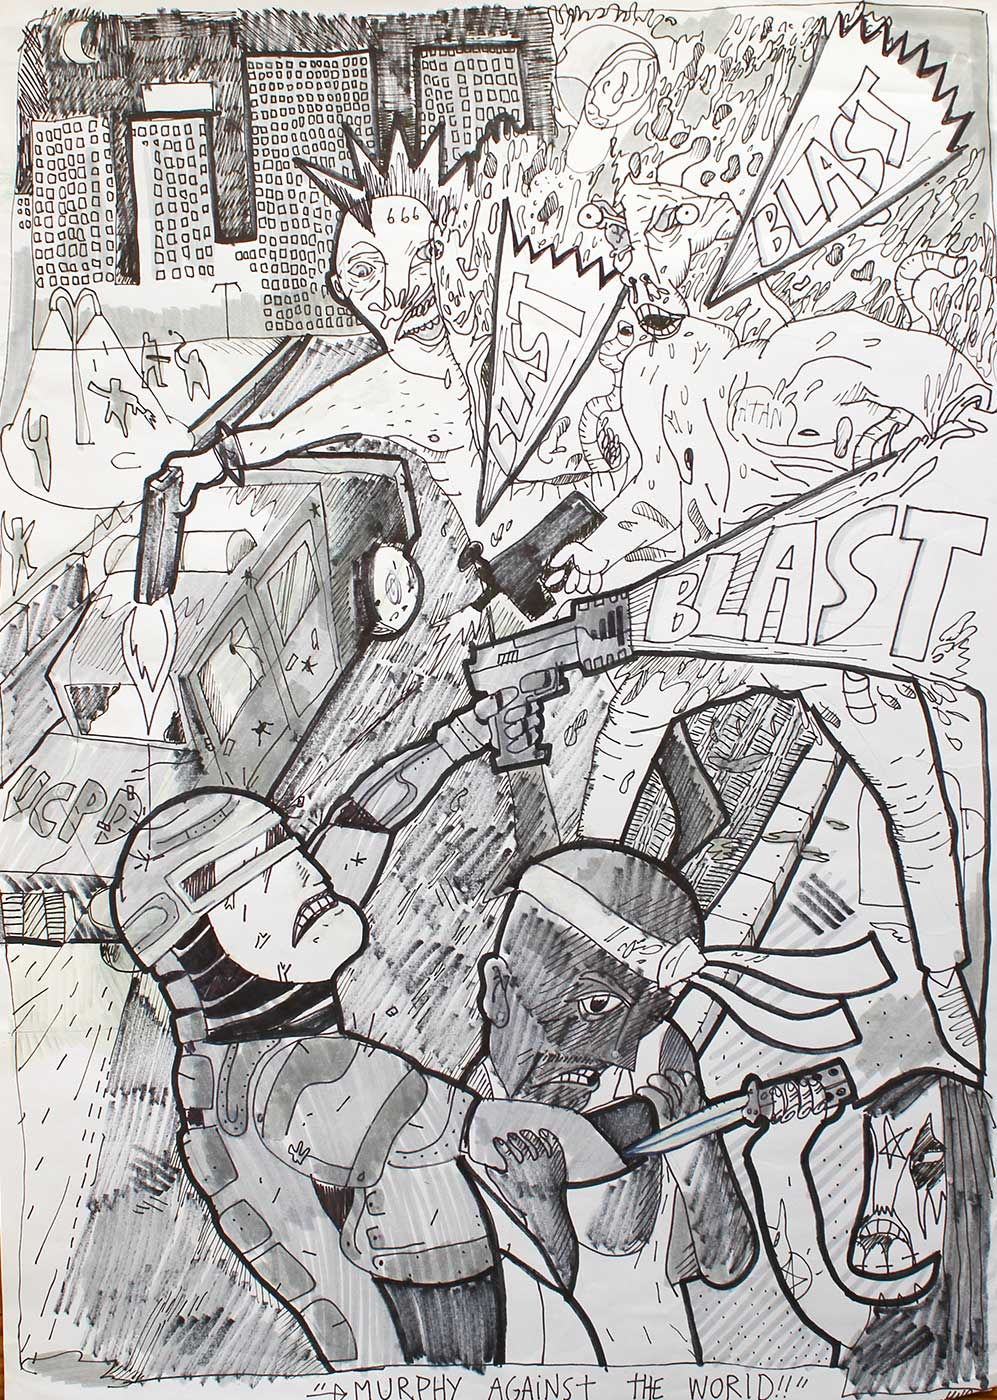 drawings, figurative, geometric, portraiture, surrealistic, architecture, black, white, artliner, paper, marker, fantasy, Buy original high quality art. Paintings, drawings, limited edition prints & posters by talented artists.